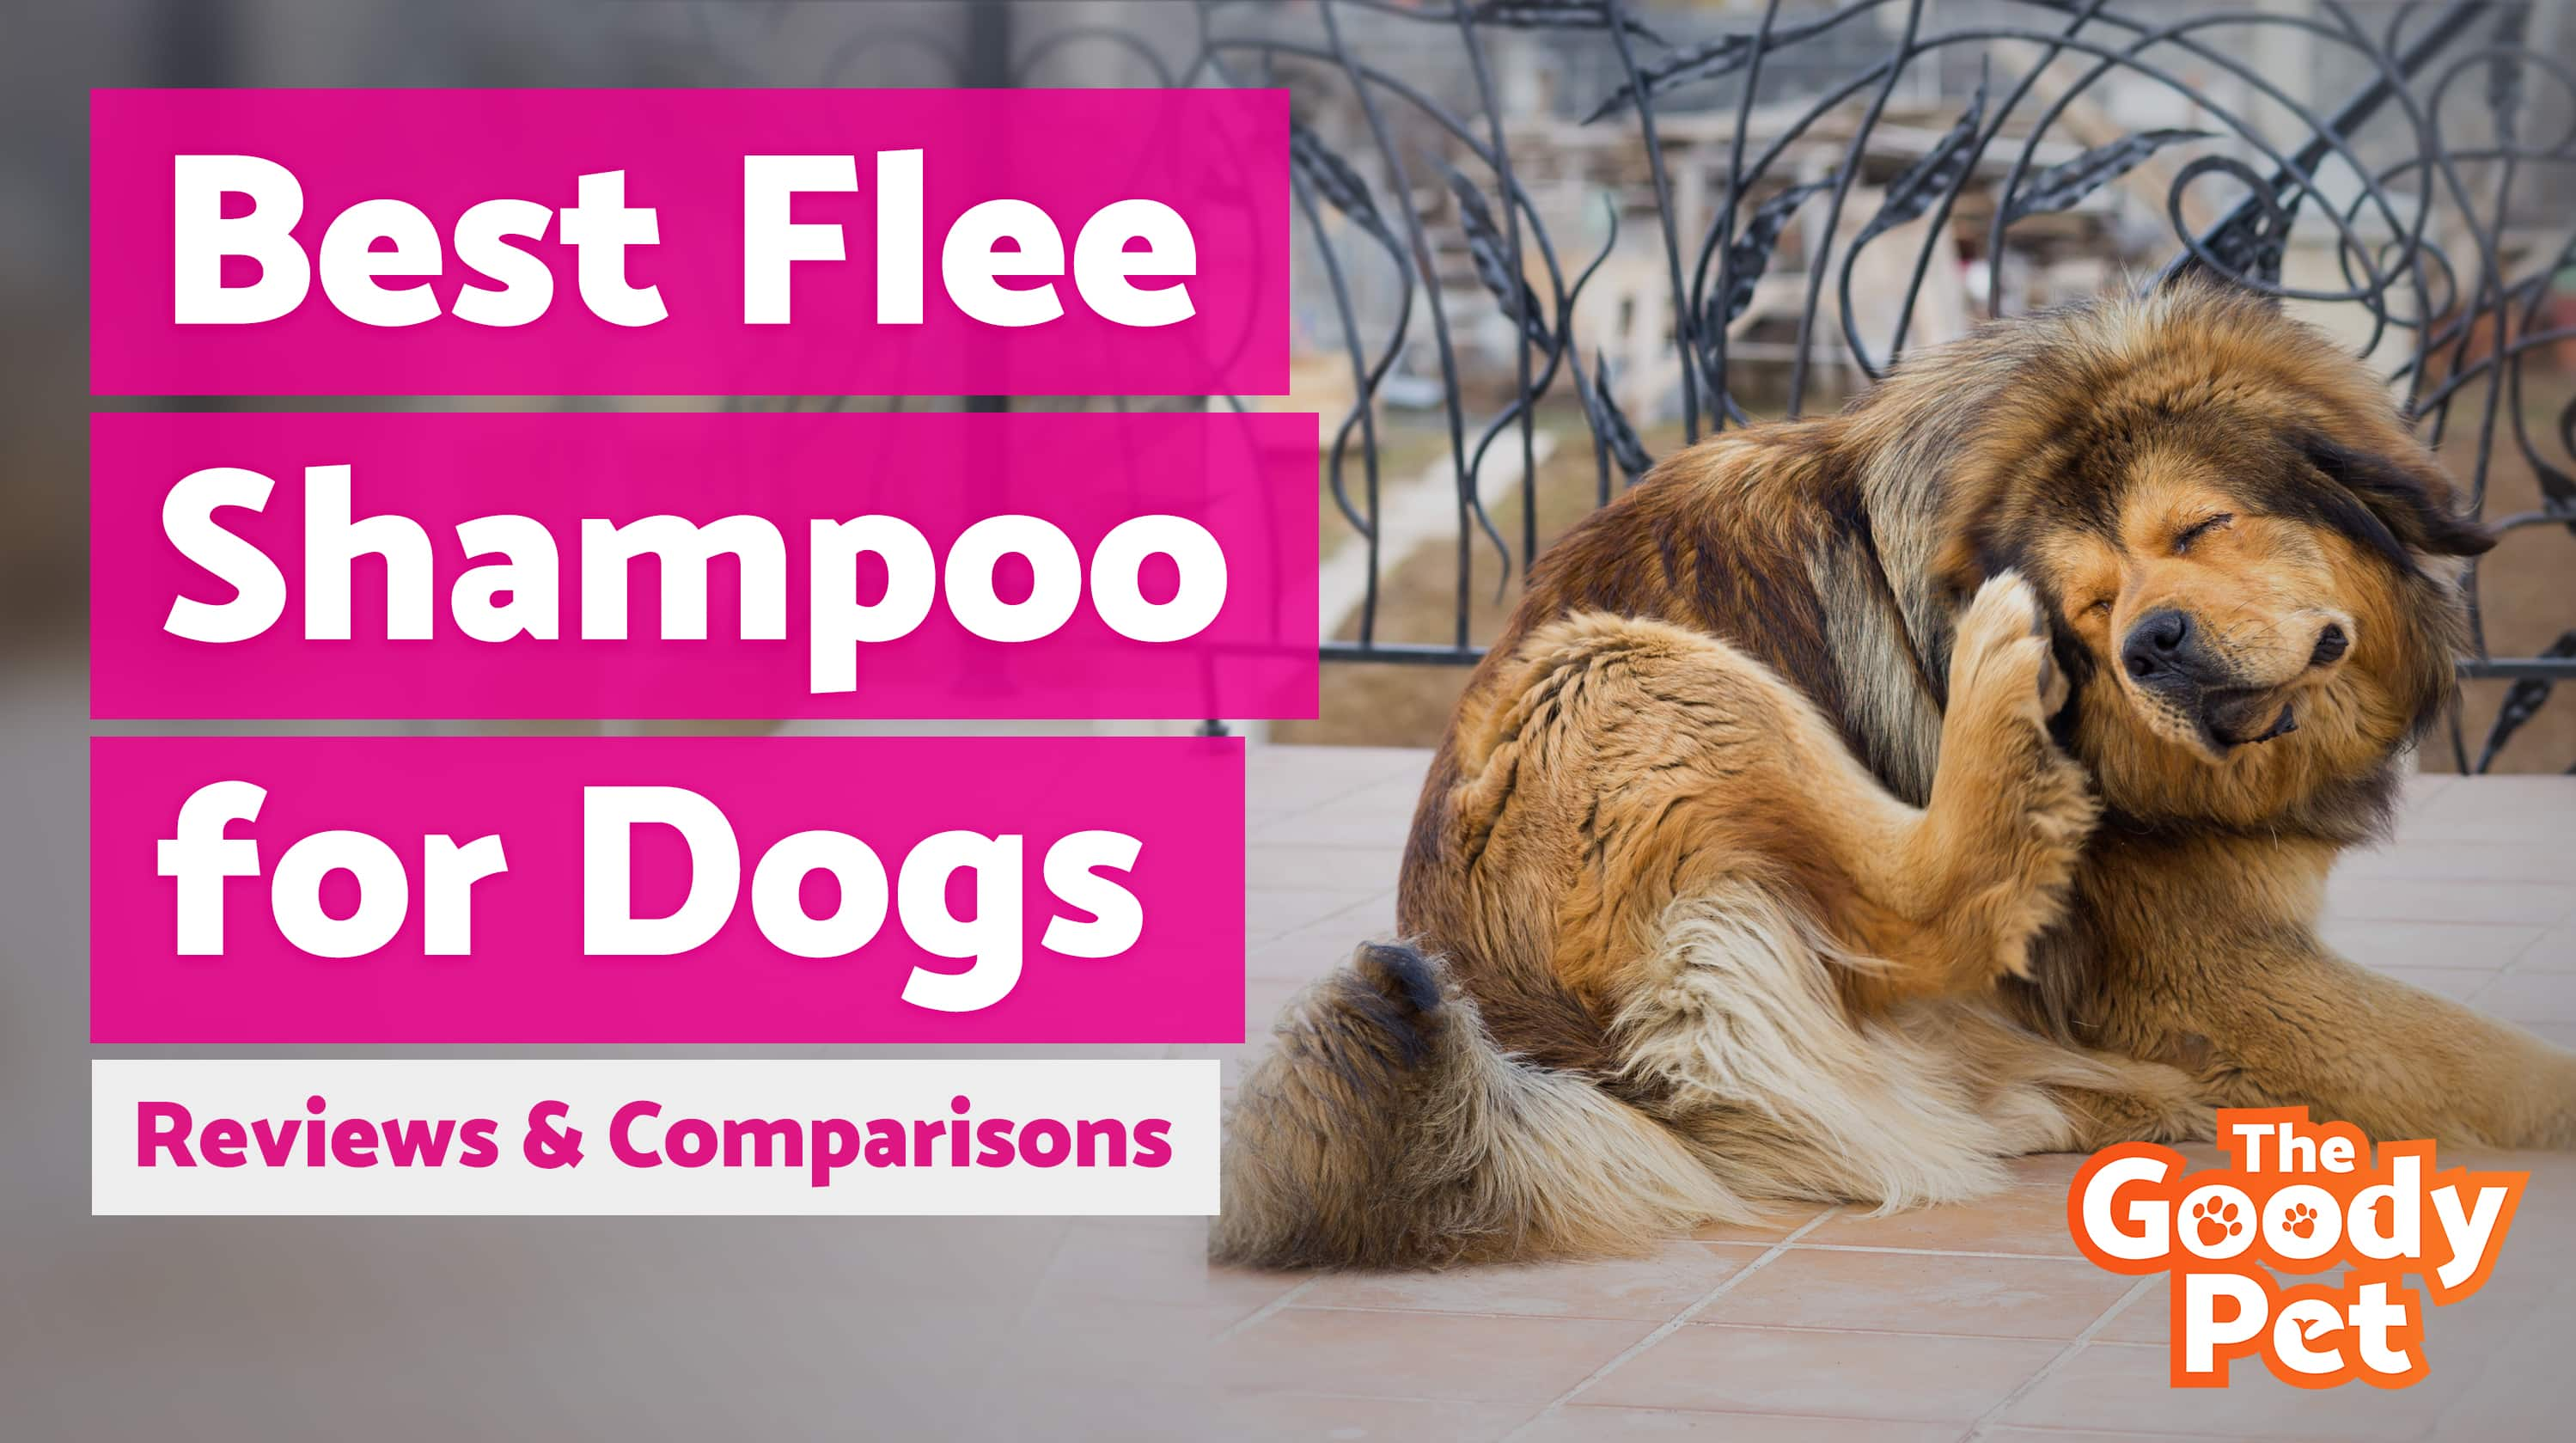 Best Flea Shampoo for Dogs (August 2019) | TheGoodyPet